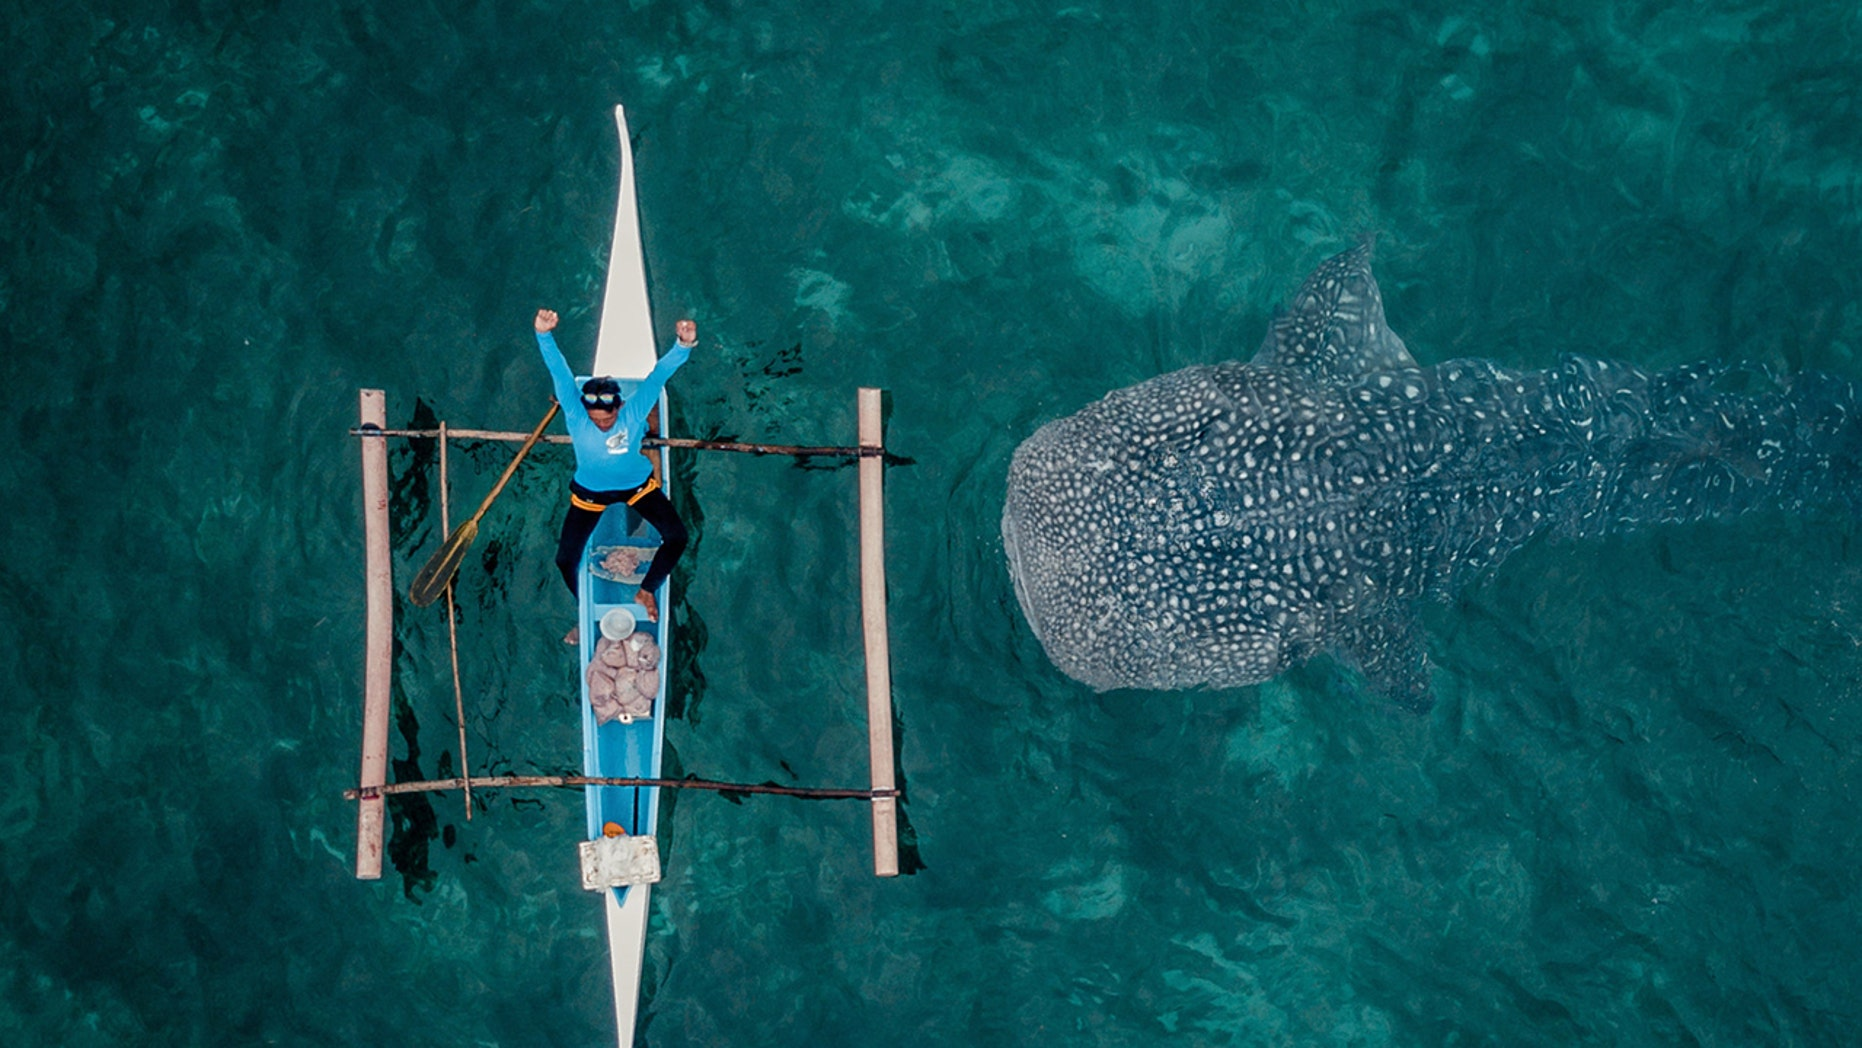 Photographer Dimitar Karanikolov took 200 shots with his drone-mounted camera before he captured the pic.